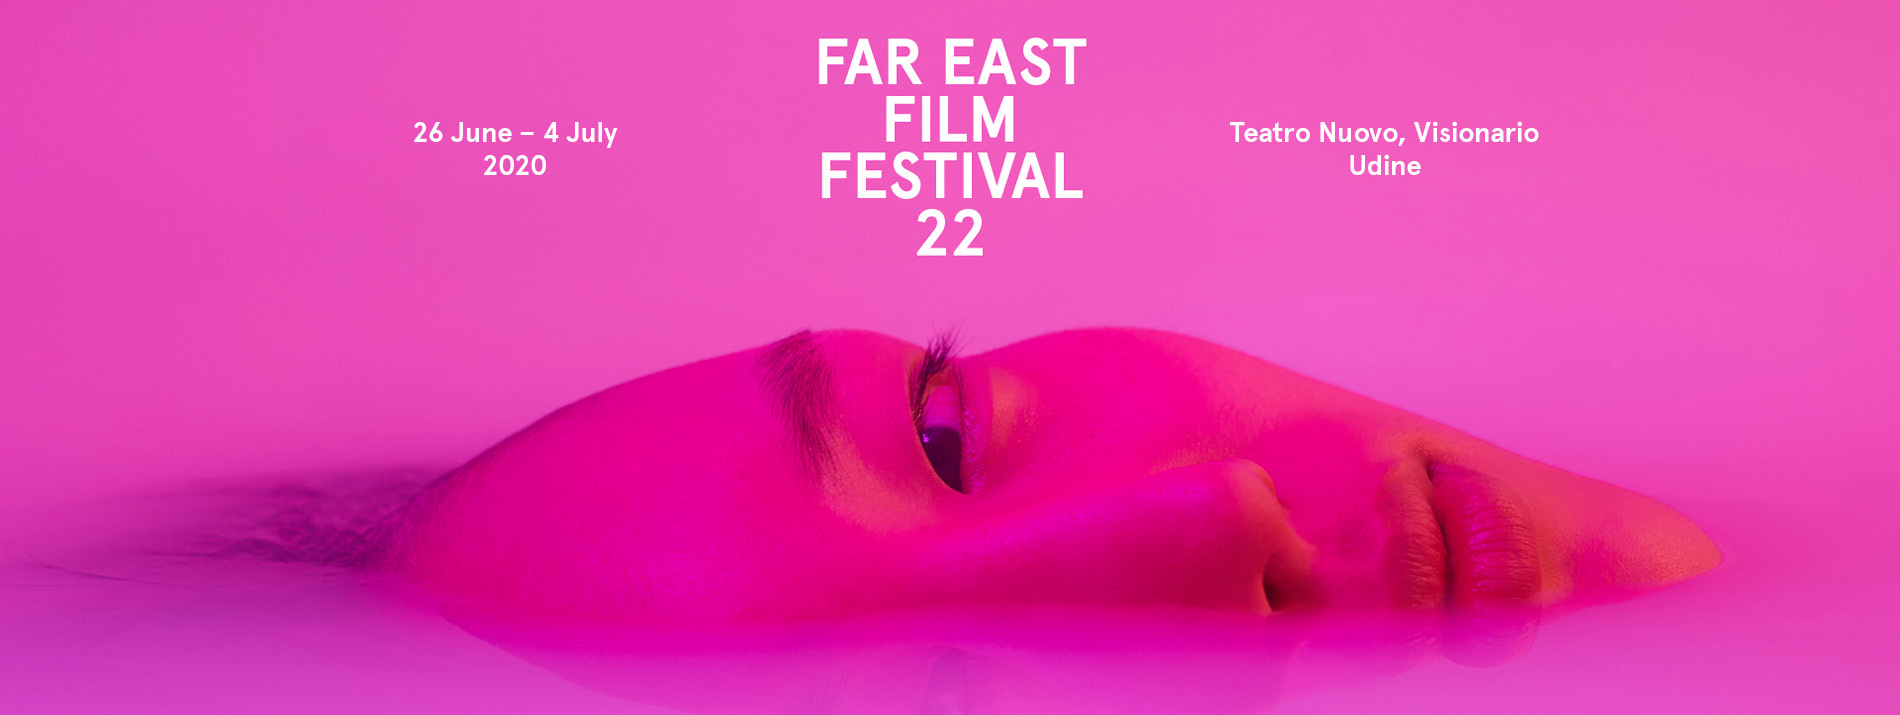 Far-east-film-festival-22